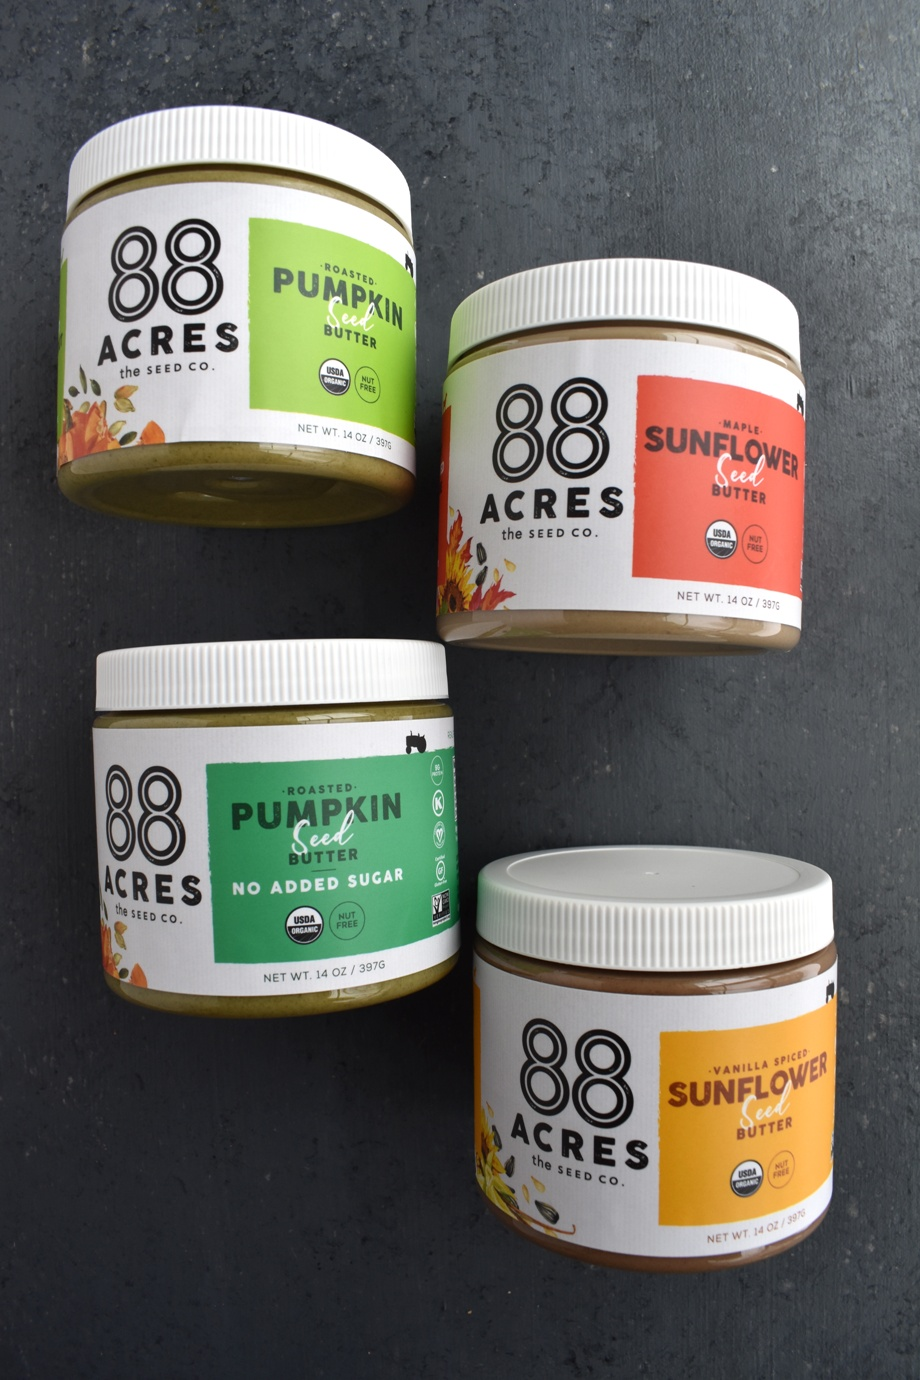 88 Acres Pumpkin and Sunflower Seed Butter